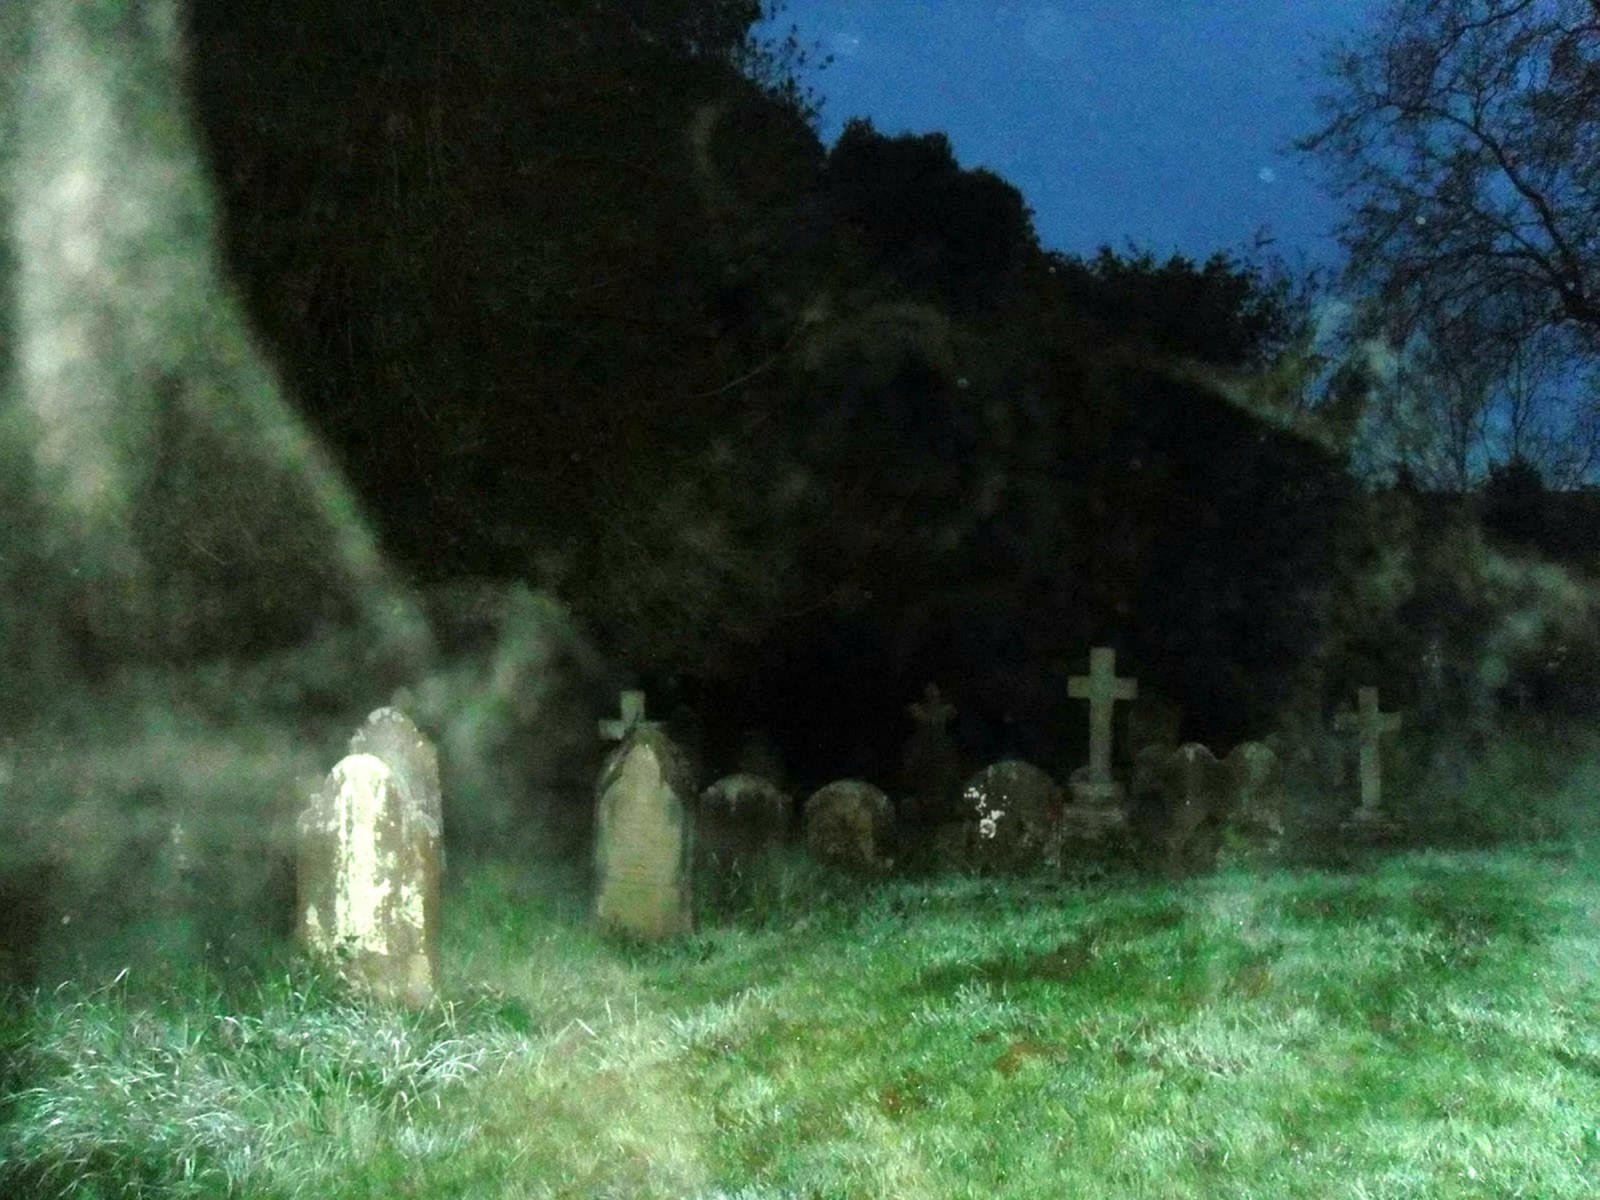 Terrified couple 'attacked' by a horde of GHOSTS as they walked through a graveyard